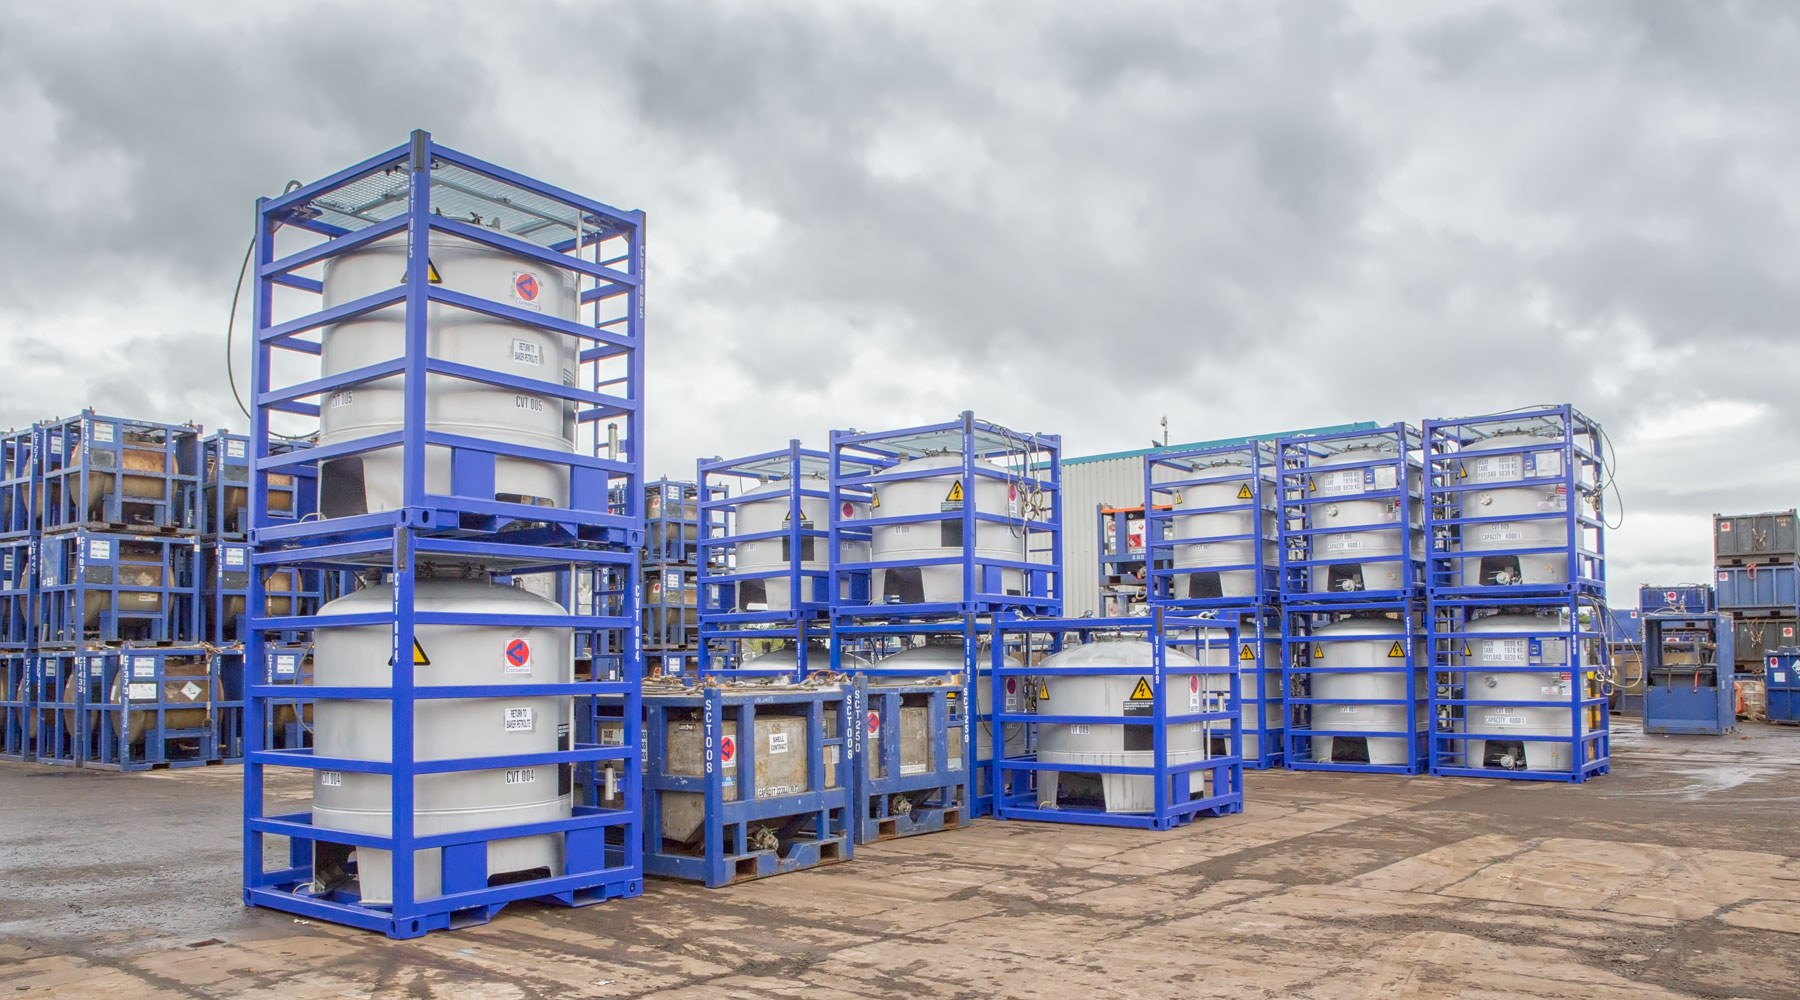 Containers encased in shipping baskets